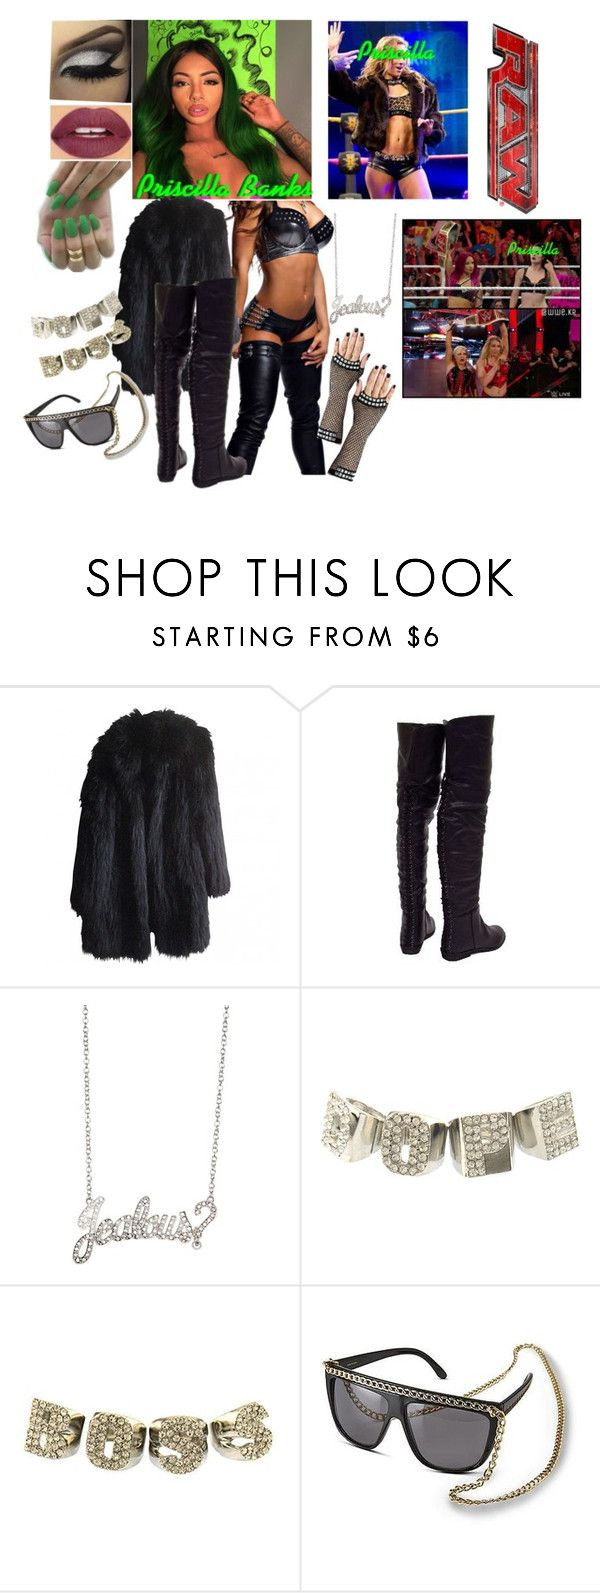 """Priscilla Sasha Comes to the Aid of Her Twin Sister ❌Extremely Late, I know"" by black-onyxx ❤ liked on Polyvore featuring Sonia Rykiel, Rock Rebel, Nicki Minaj, Carmella and TNA"